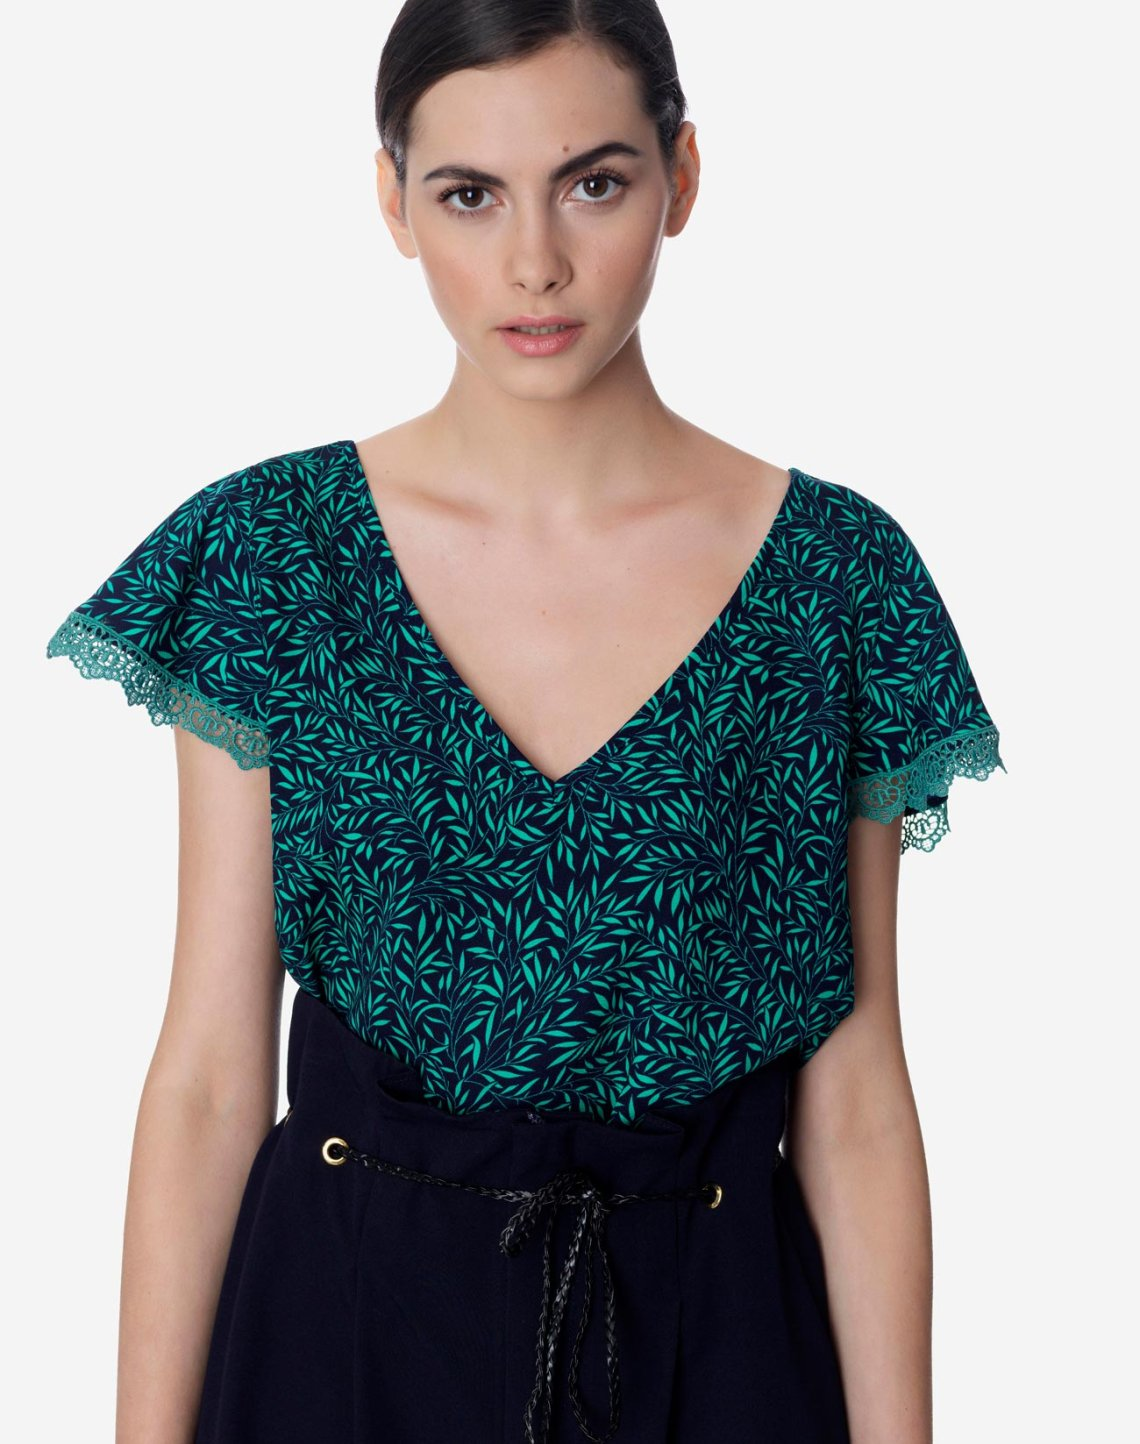 Printed top with lace